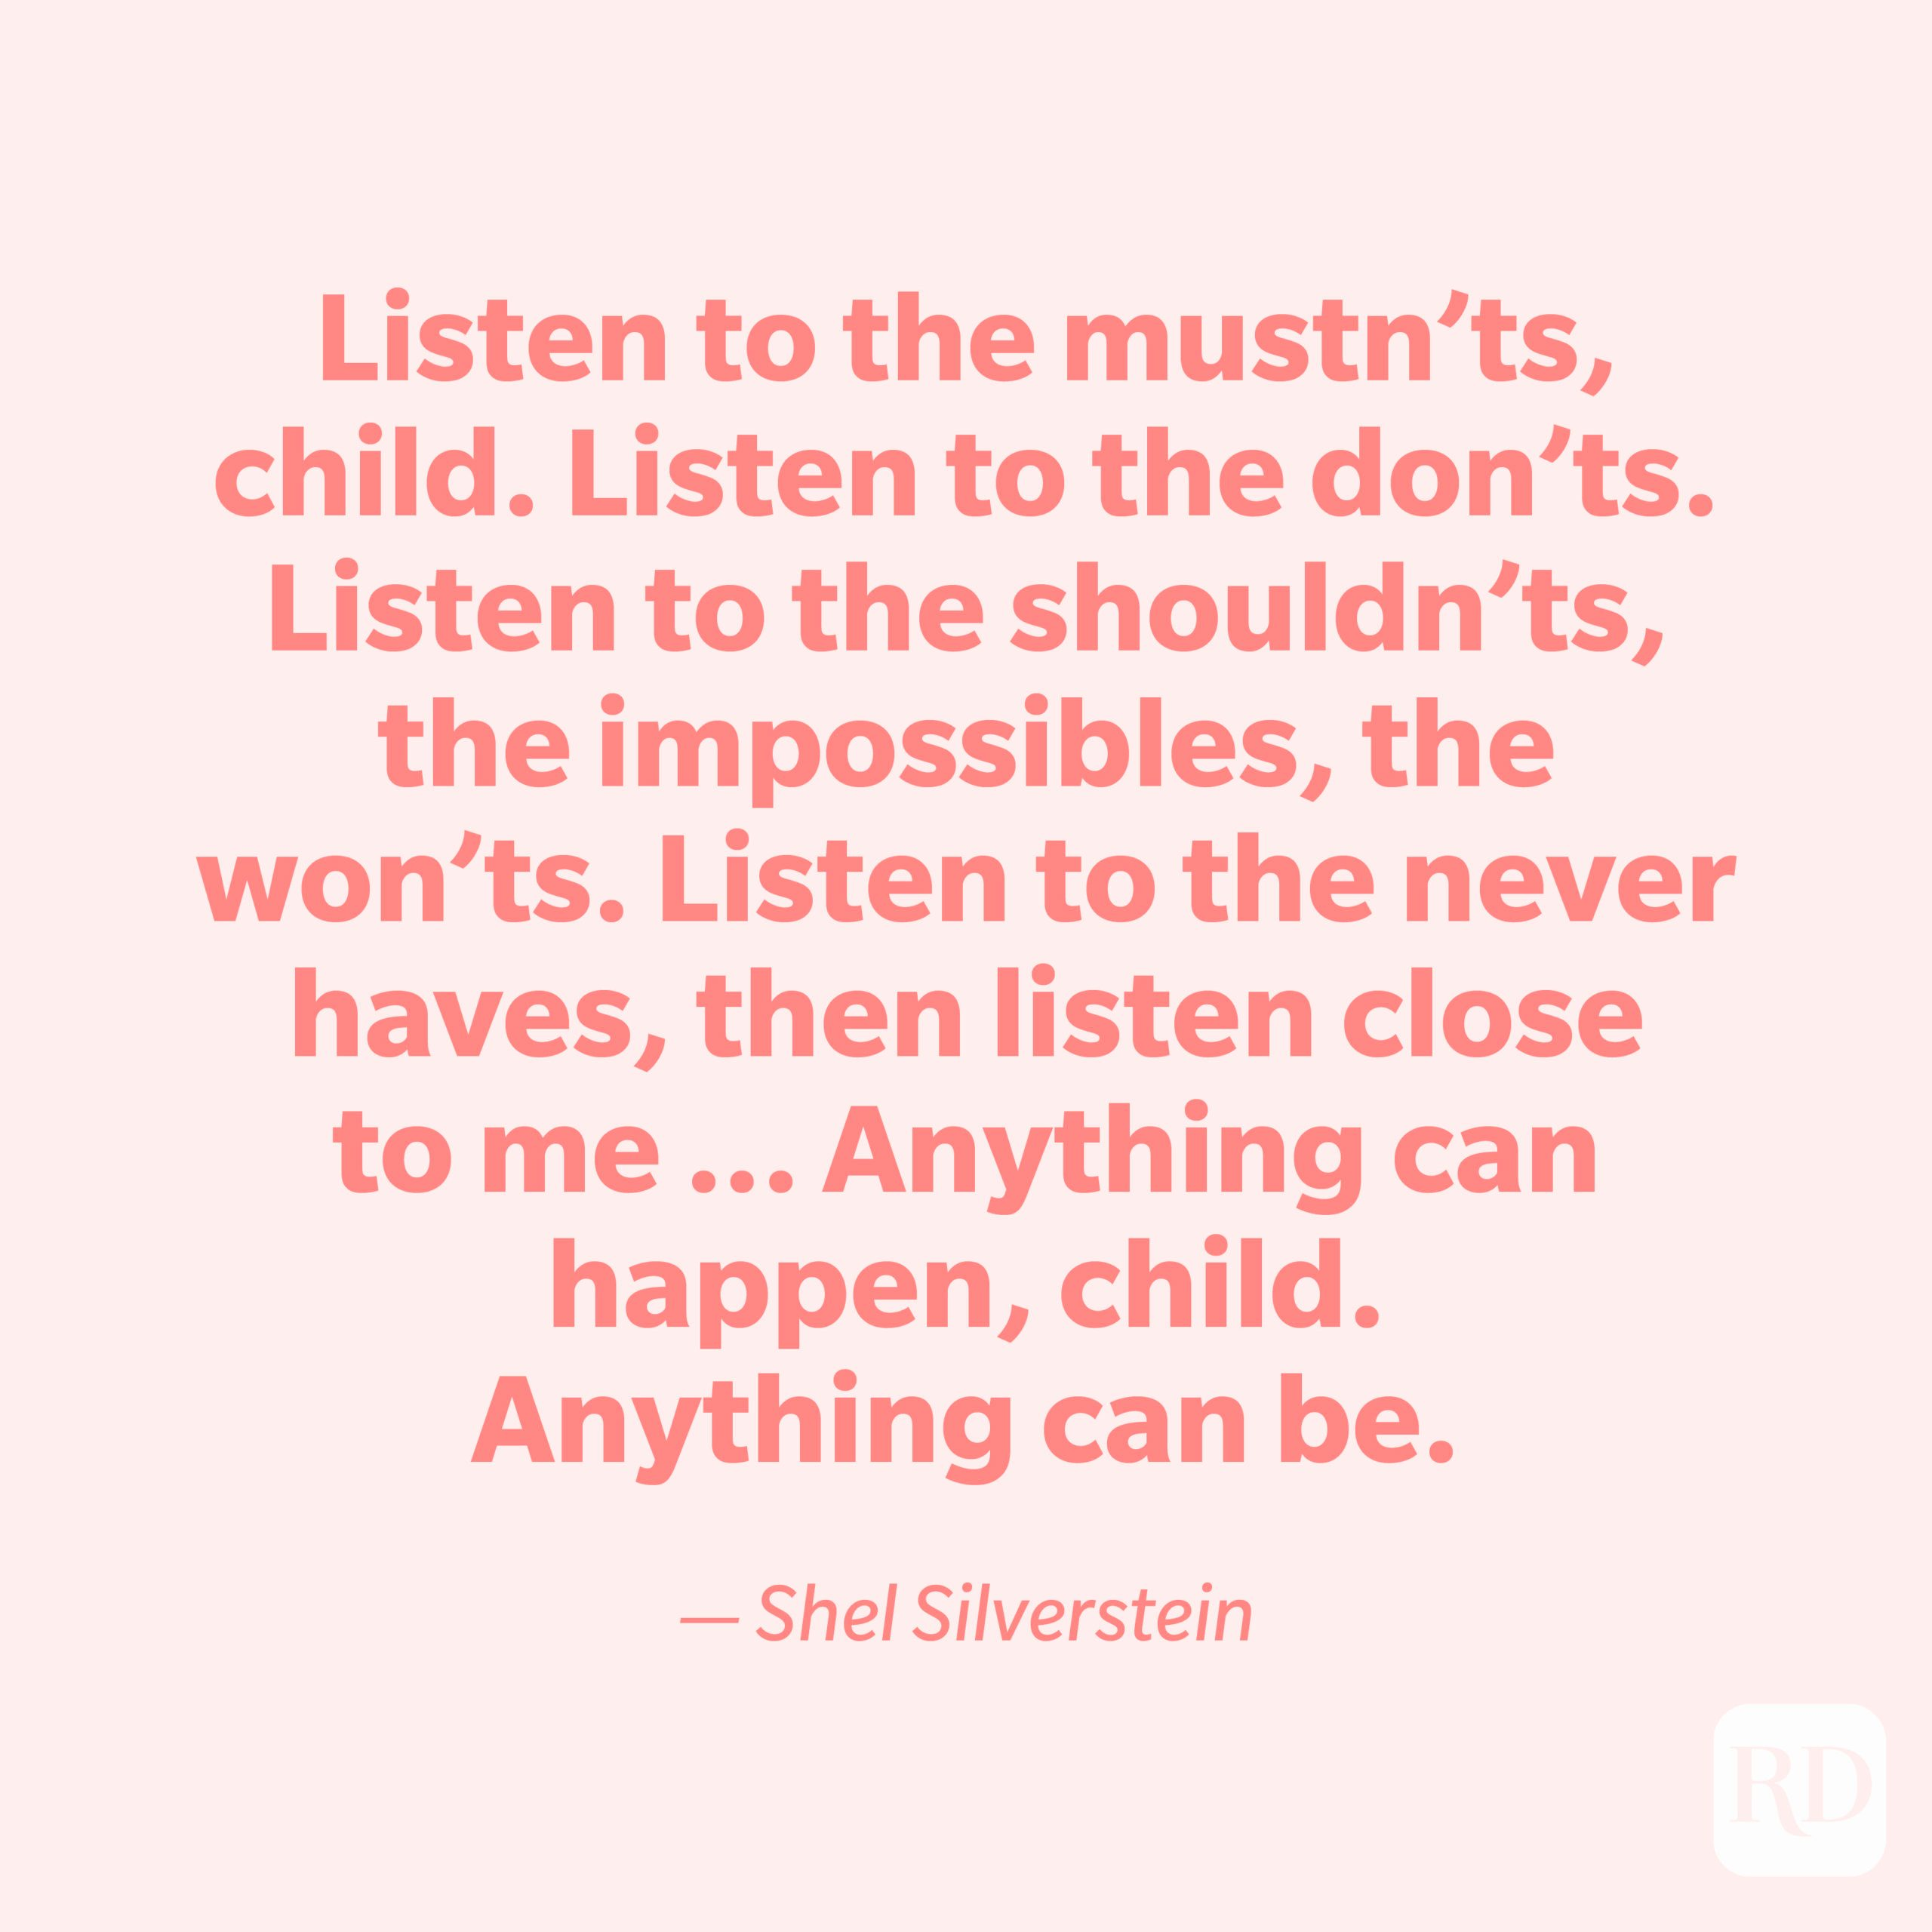 """""""Listen to the mustn'ts, child. Listen to the don'ts. Listen to the shouldn'ts, the impossibles, the won'ts. Listen to the never haves, then listen close to me ... Anything can happen, child. Anything can be."""" —Shel Silverstein."""